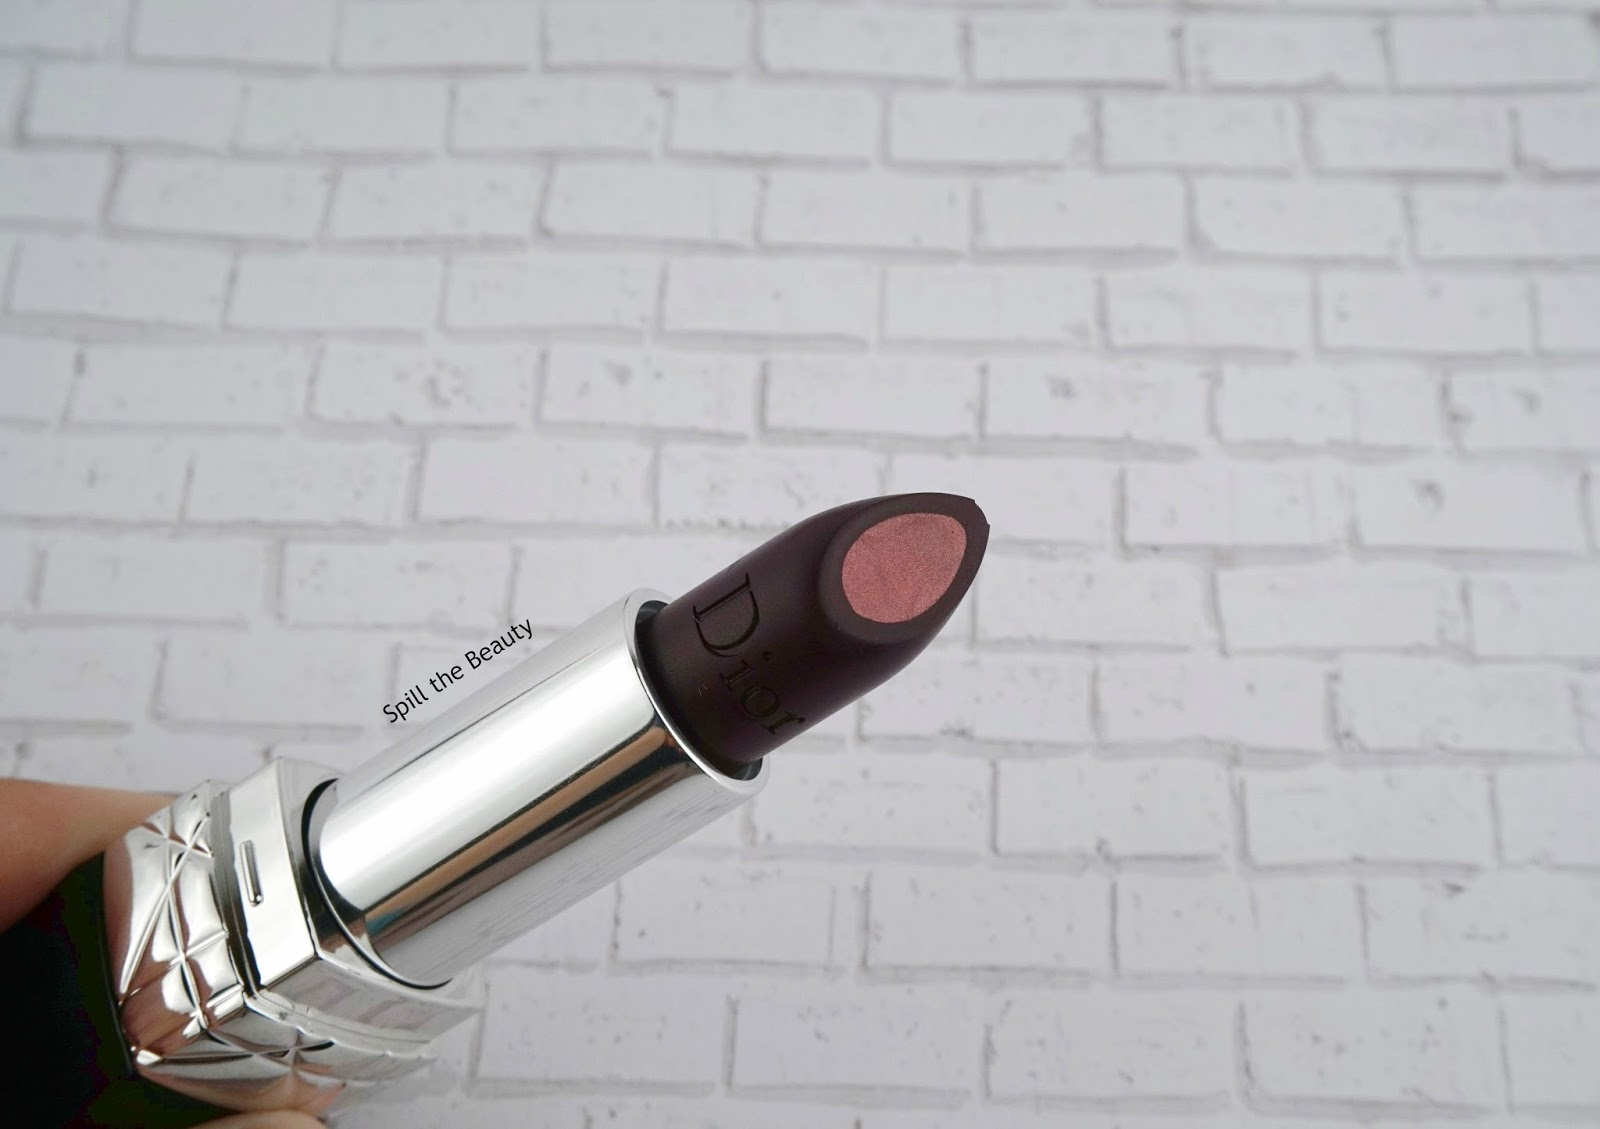 dior rouge dior double rouge review swatches look poison purple 992 vibrant nude 239